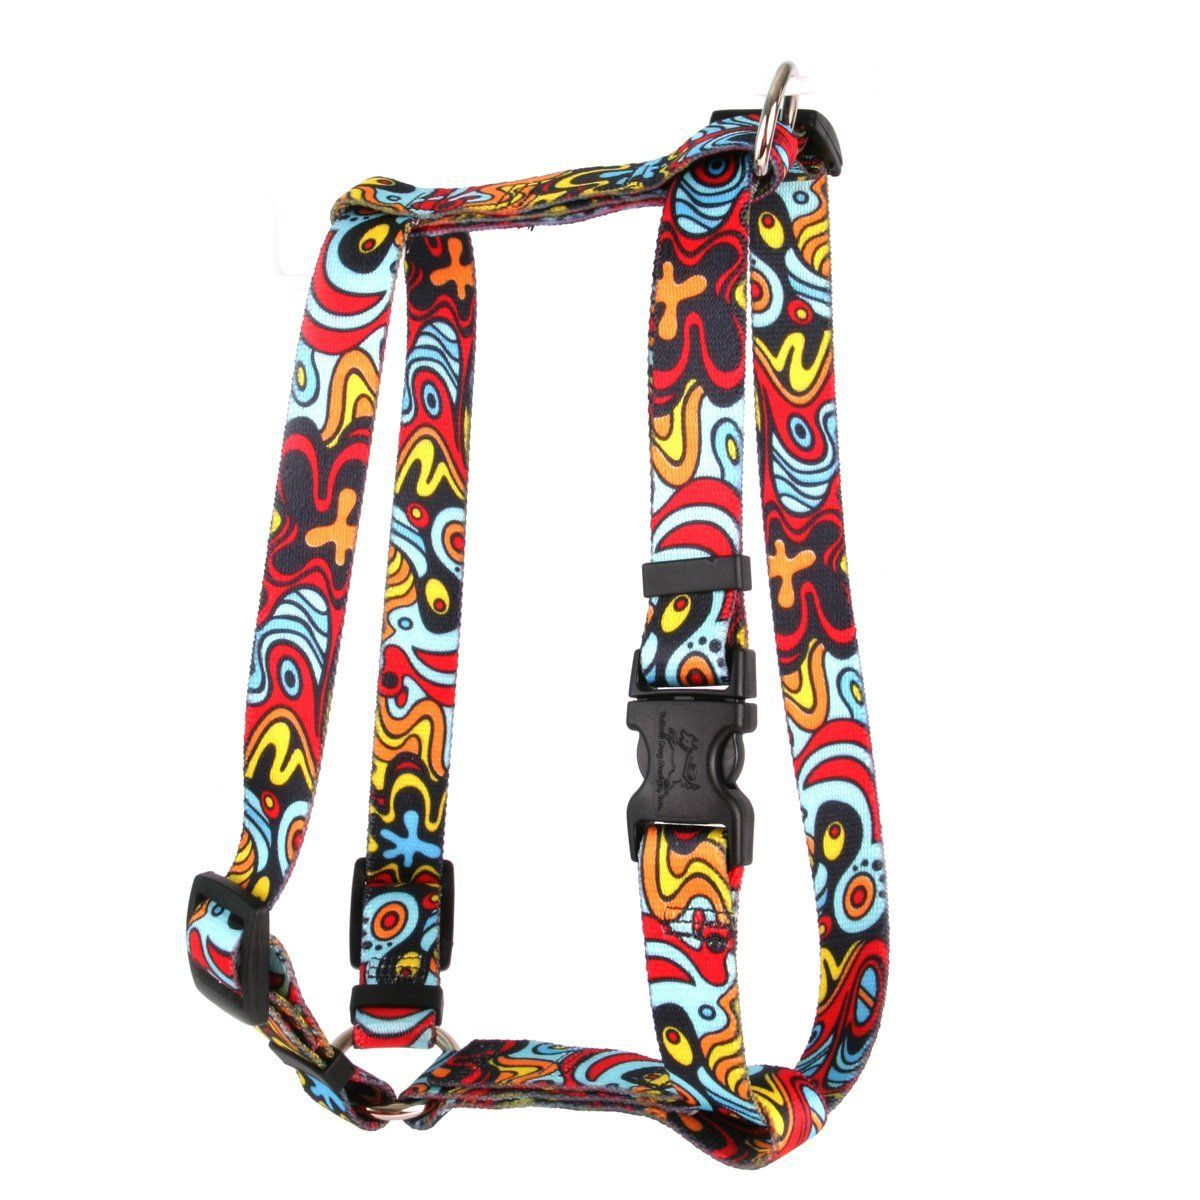 Yellow Dog Design Abstract Roman Style H Dog Harness Visit The